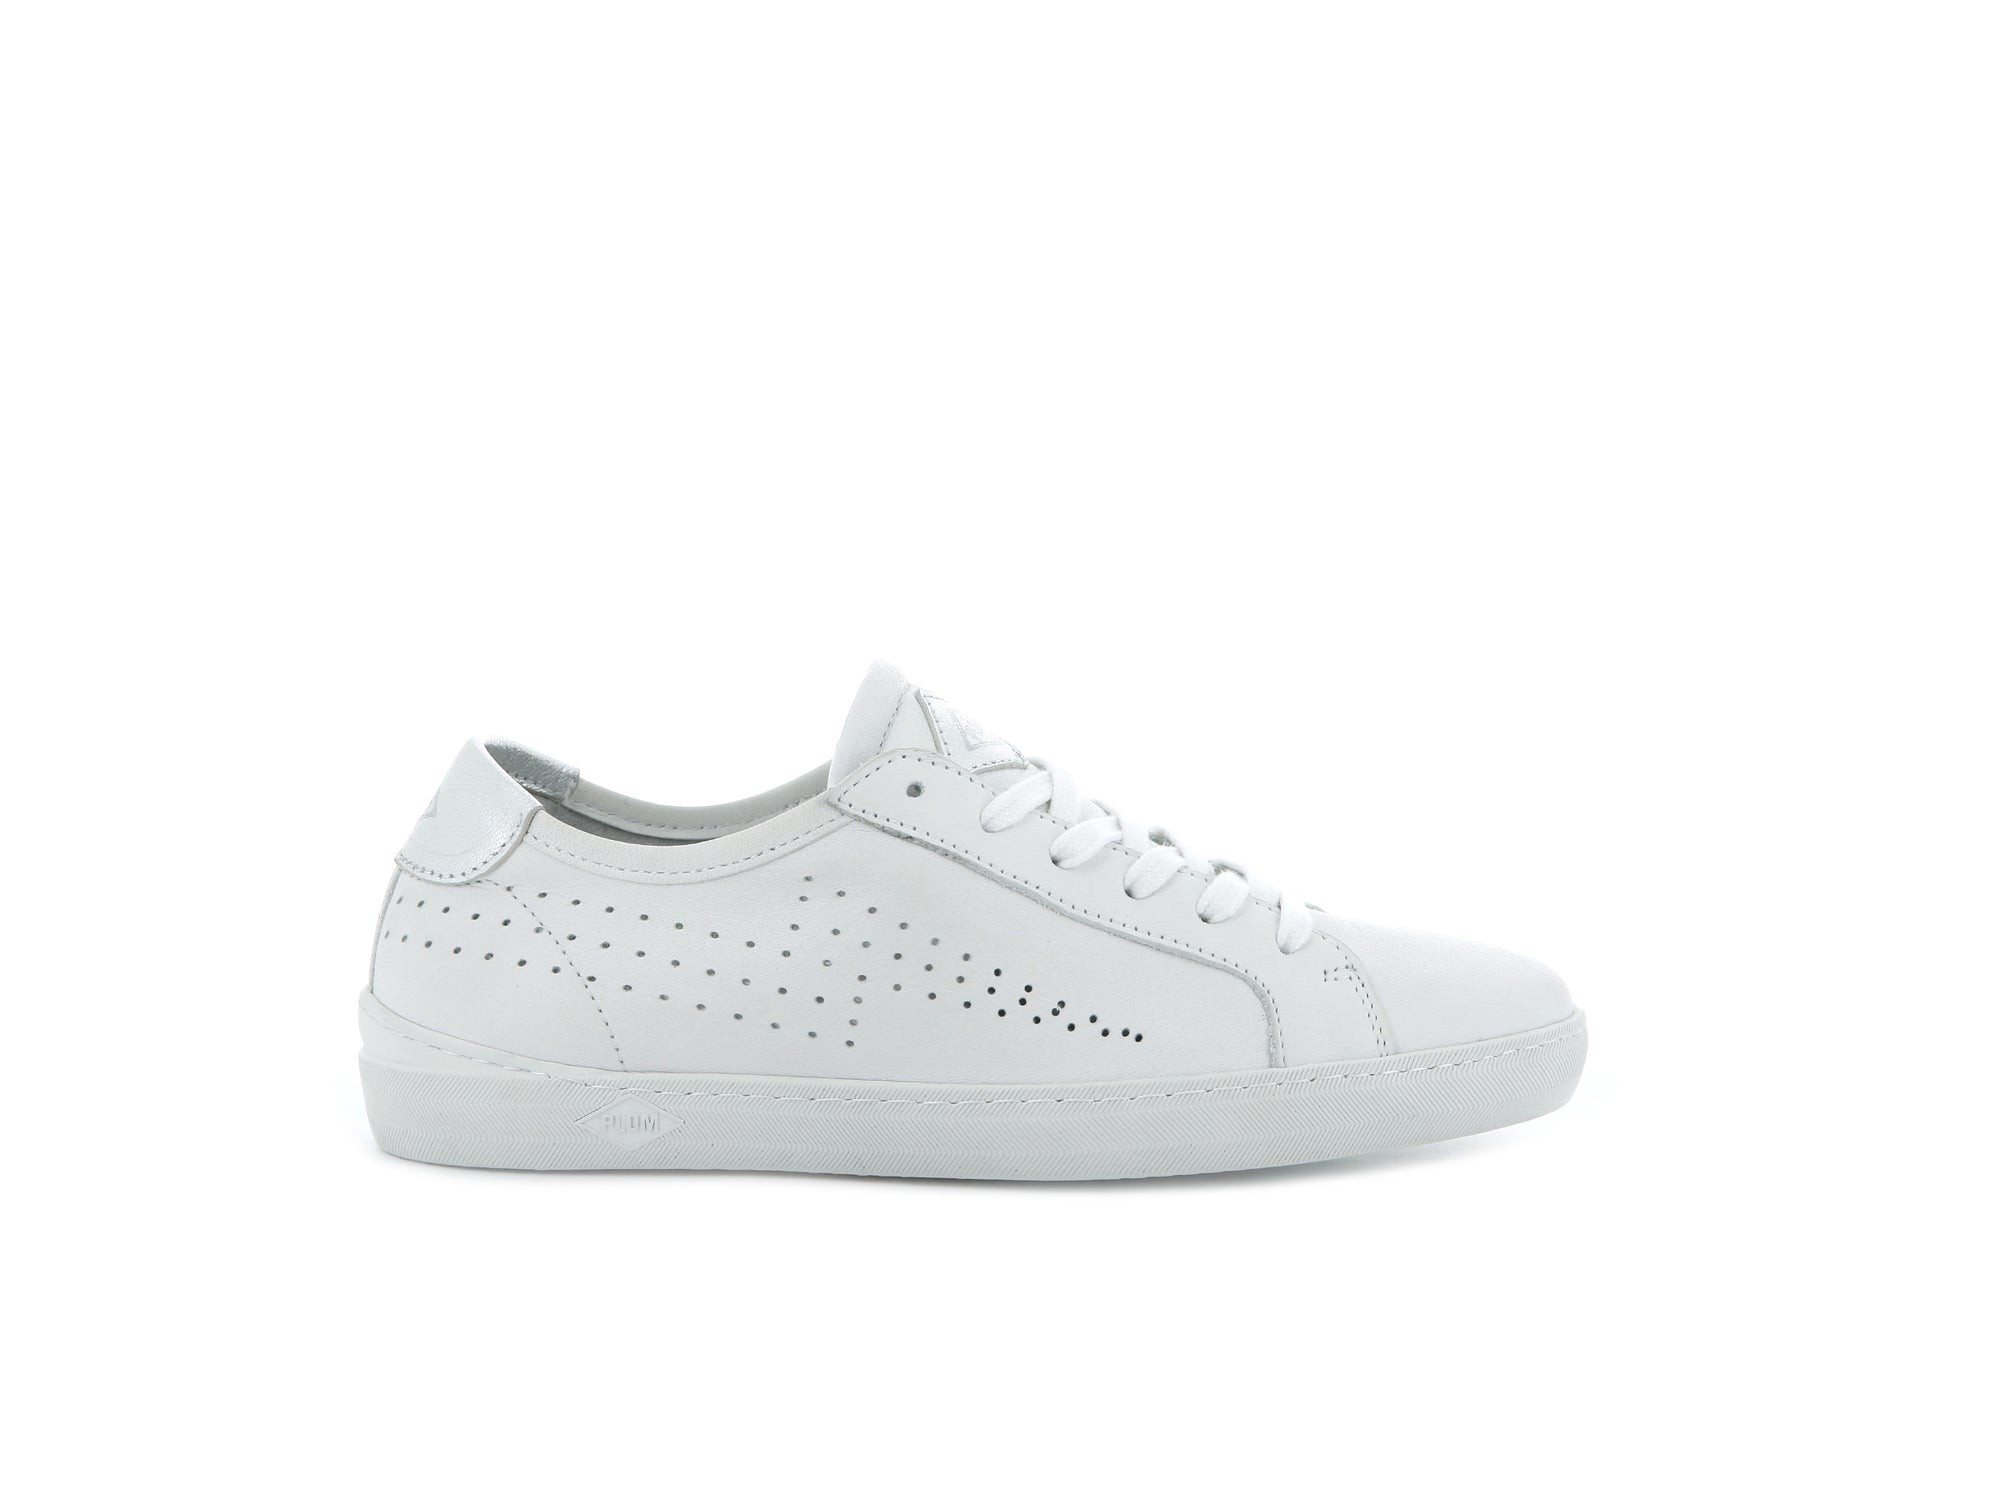 76055_420 | Baskets femme NARCOTIC PORTO | WHITE